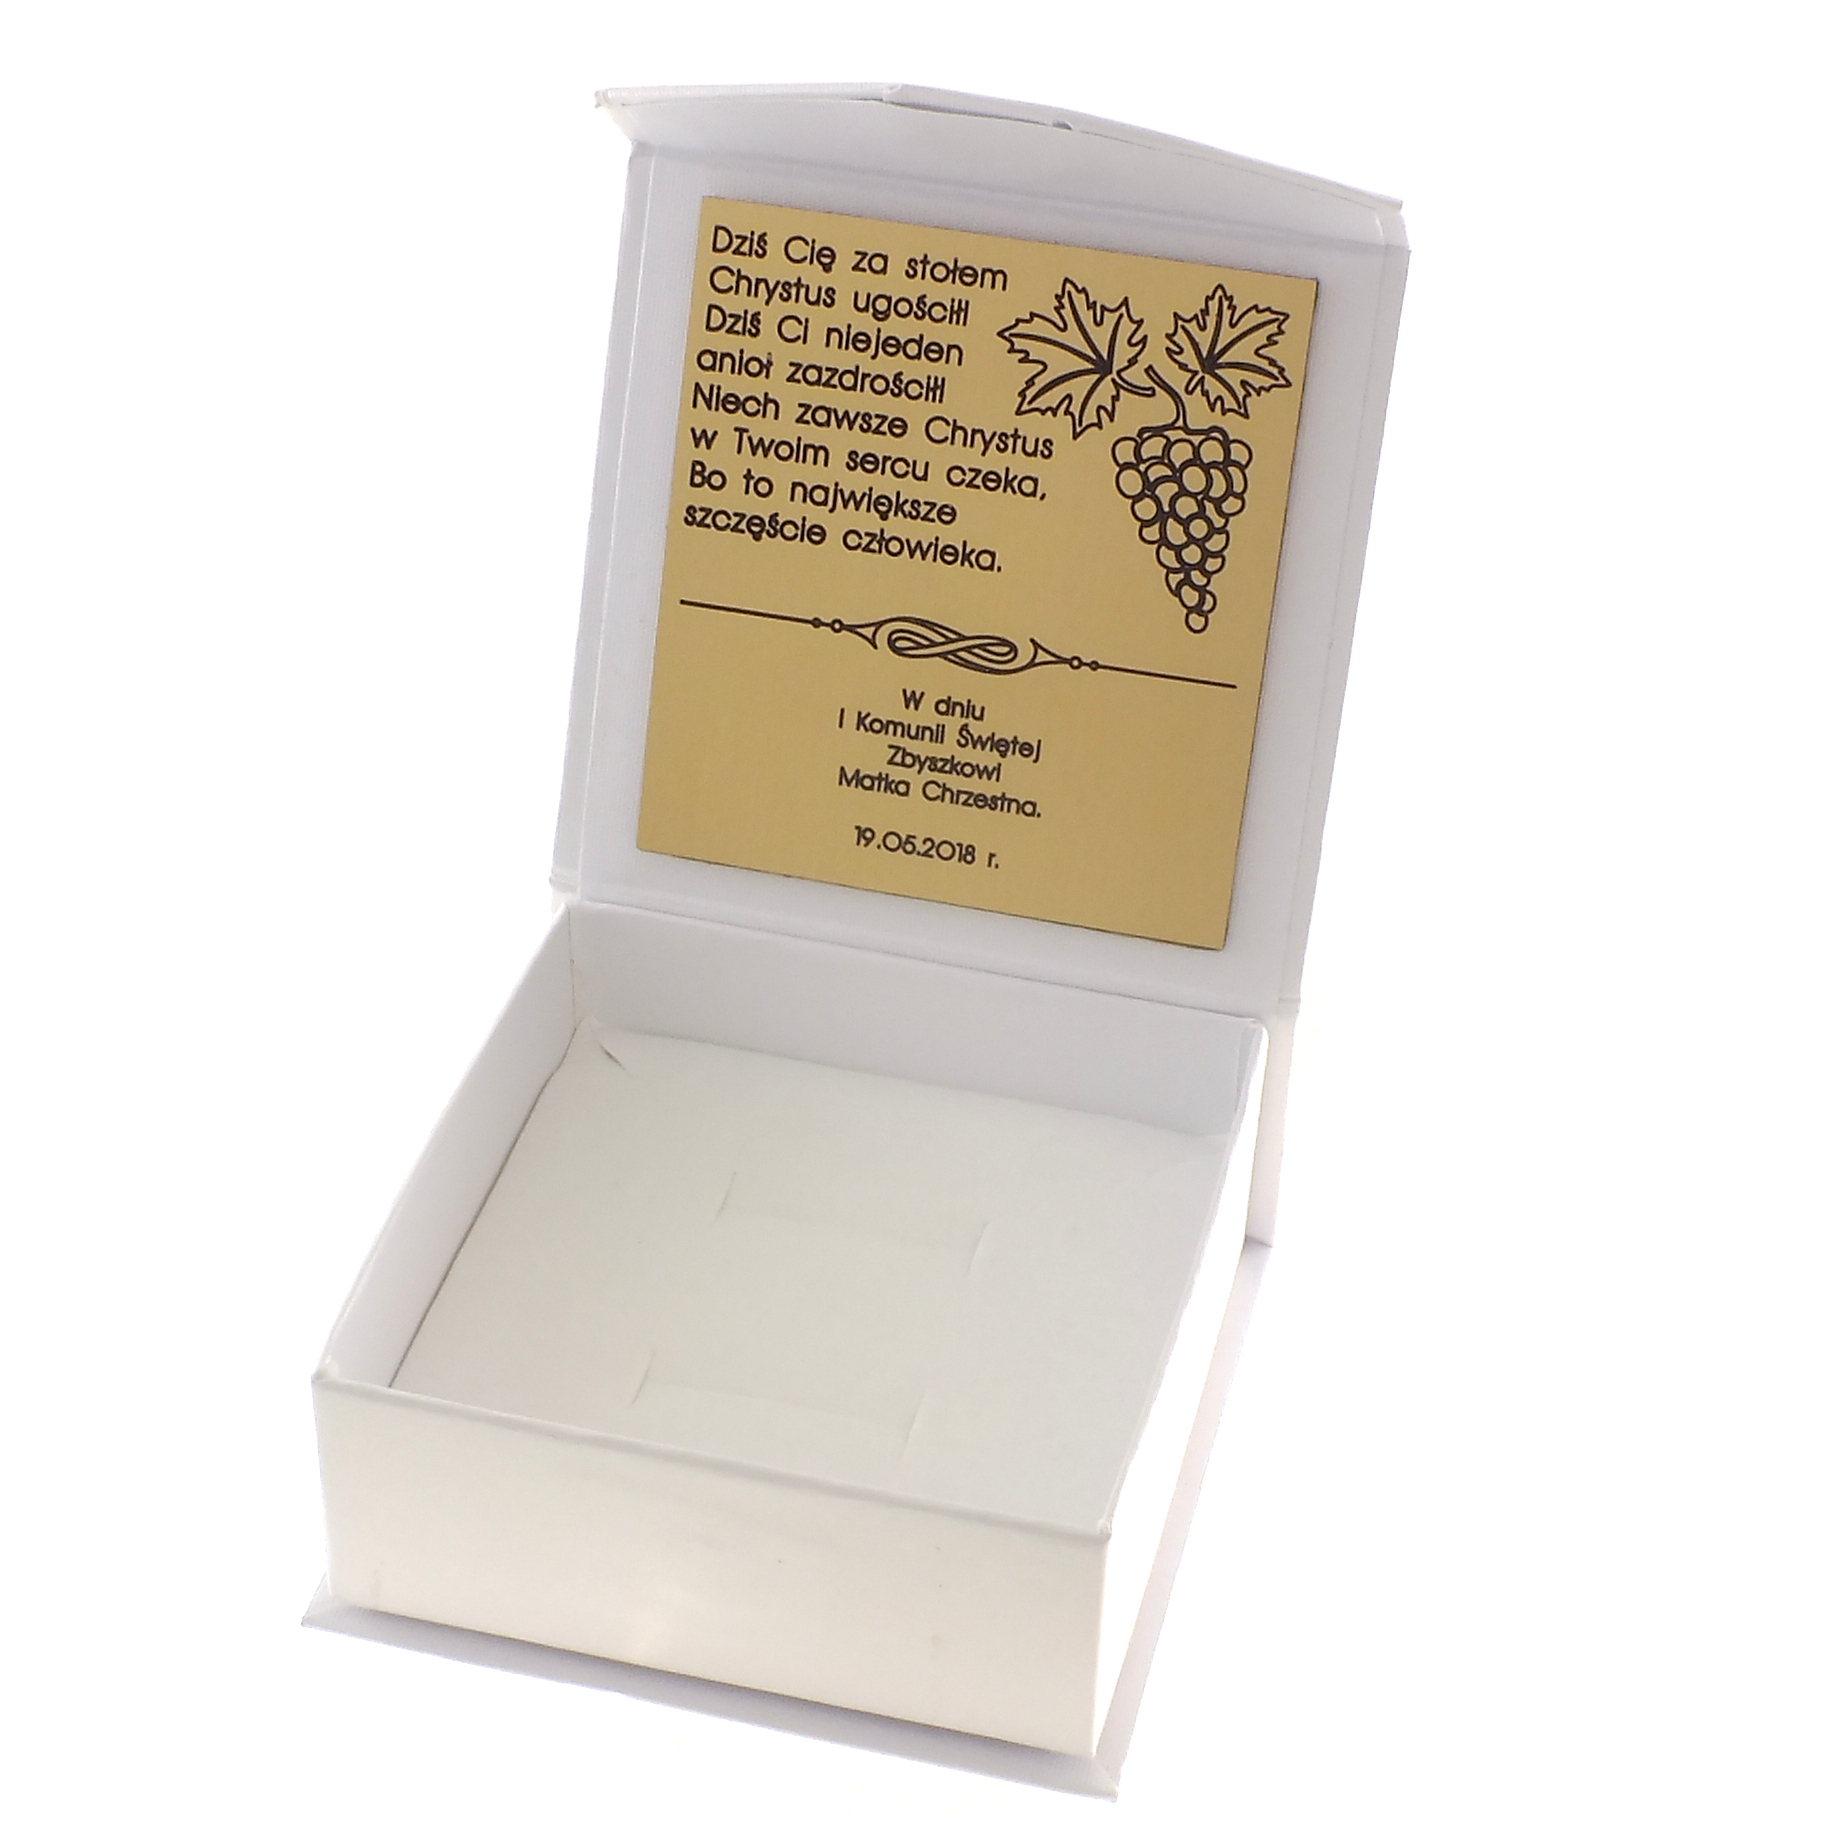 Item COMMUNICATION BOX GIFT WHITE DECORATIVE ENGRAVER